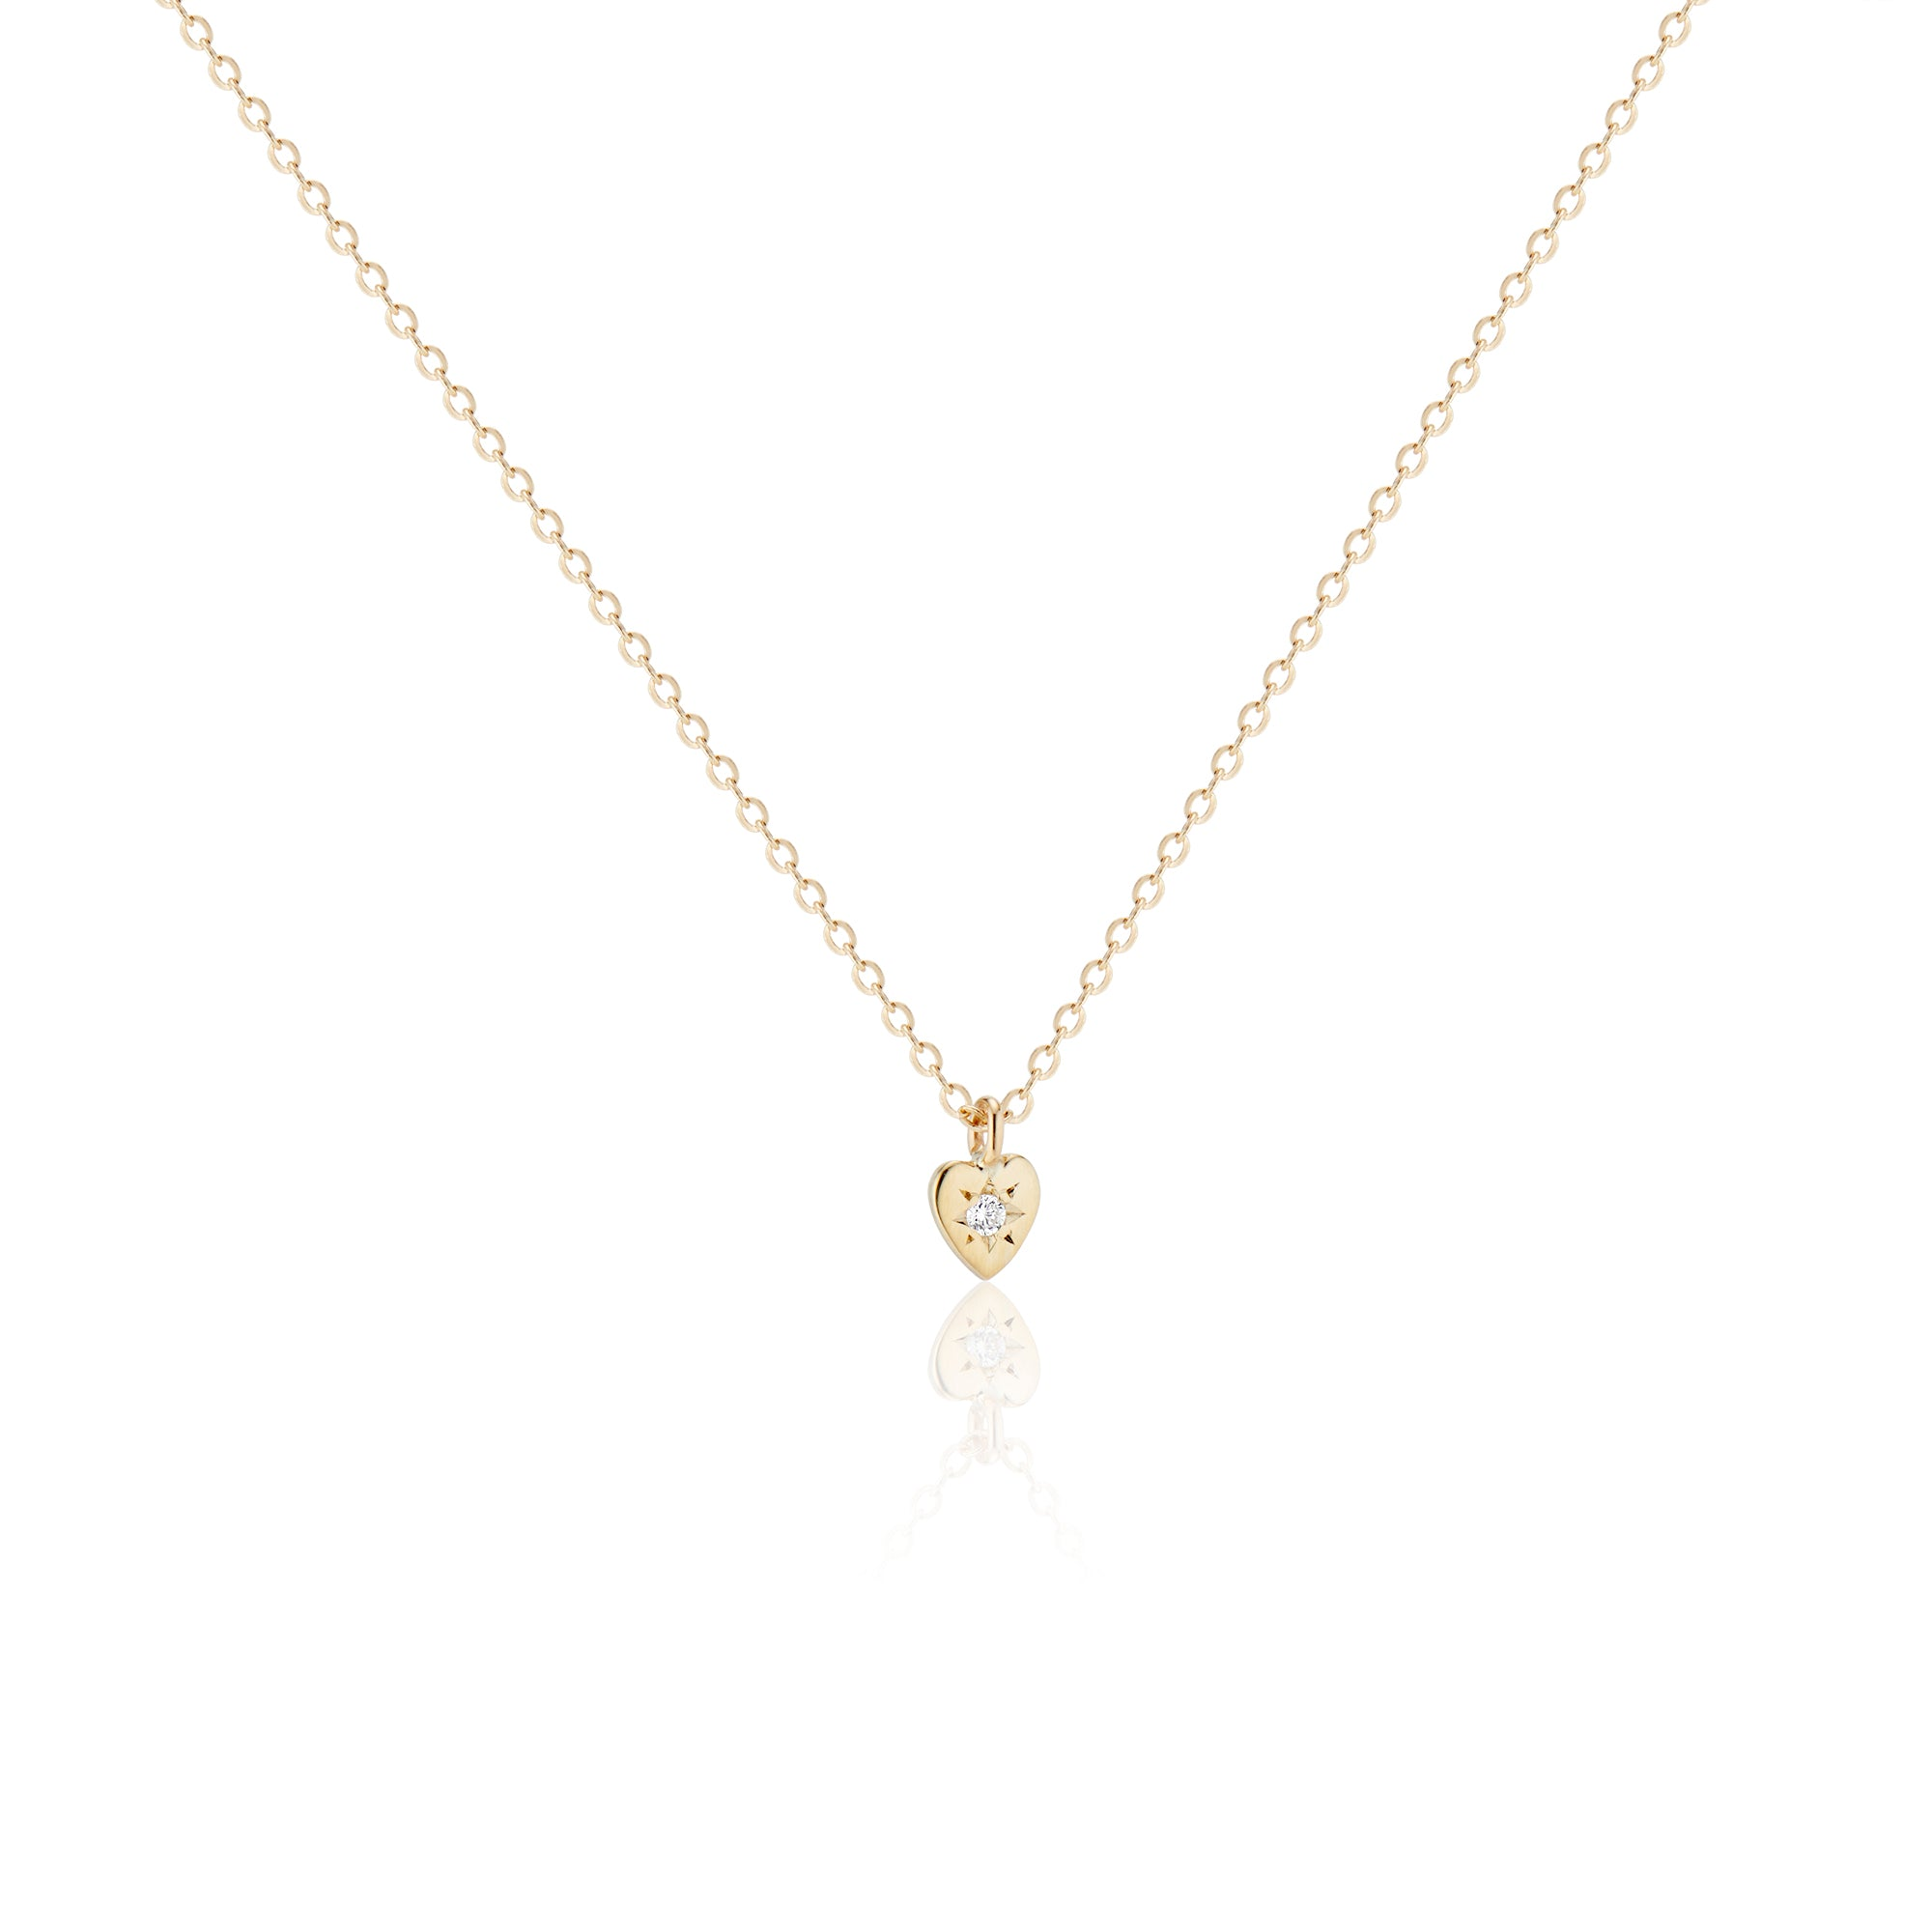 Teeny Tiny Sweetheart Necklace - Charlie and Marcelle